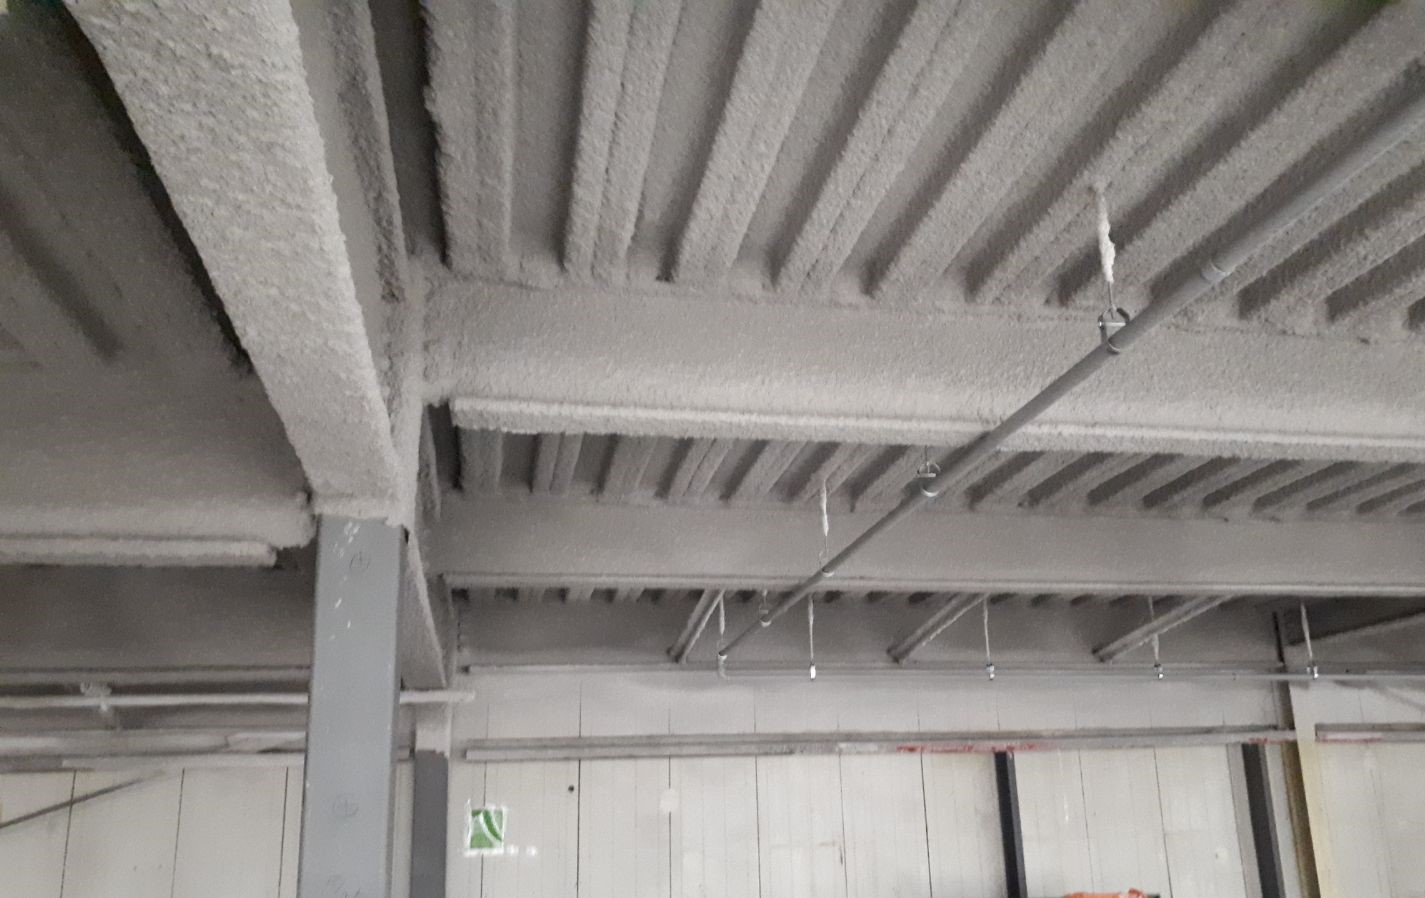 Commerical Fireproofing - Saint John DTI Building